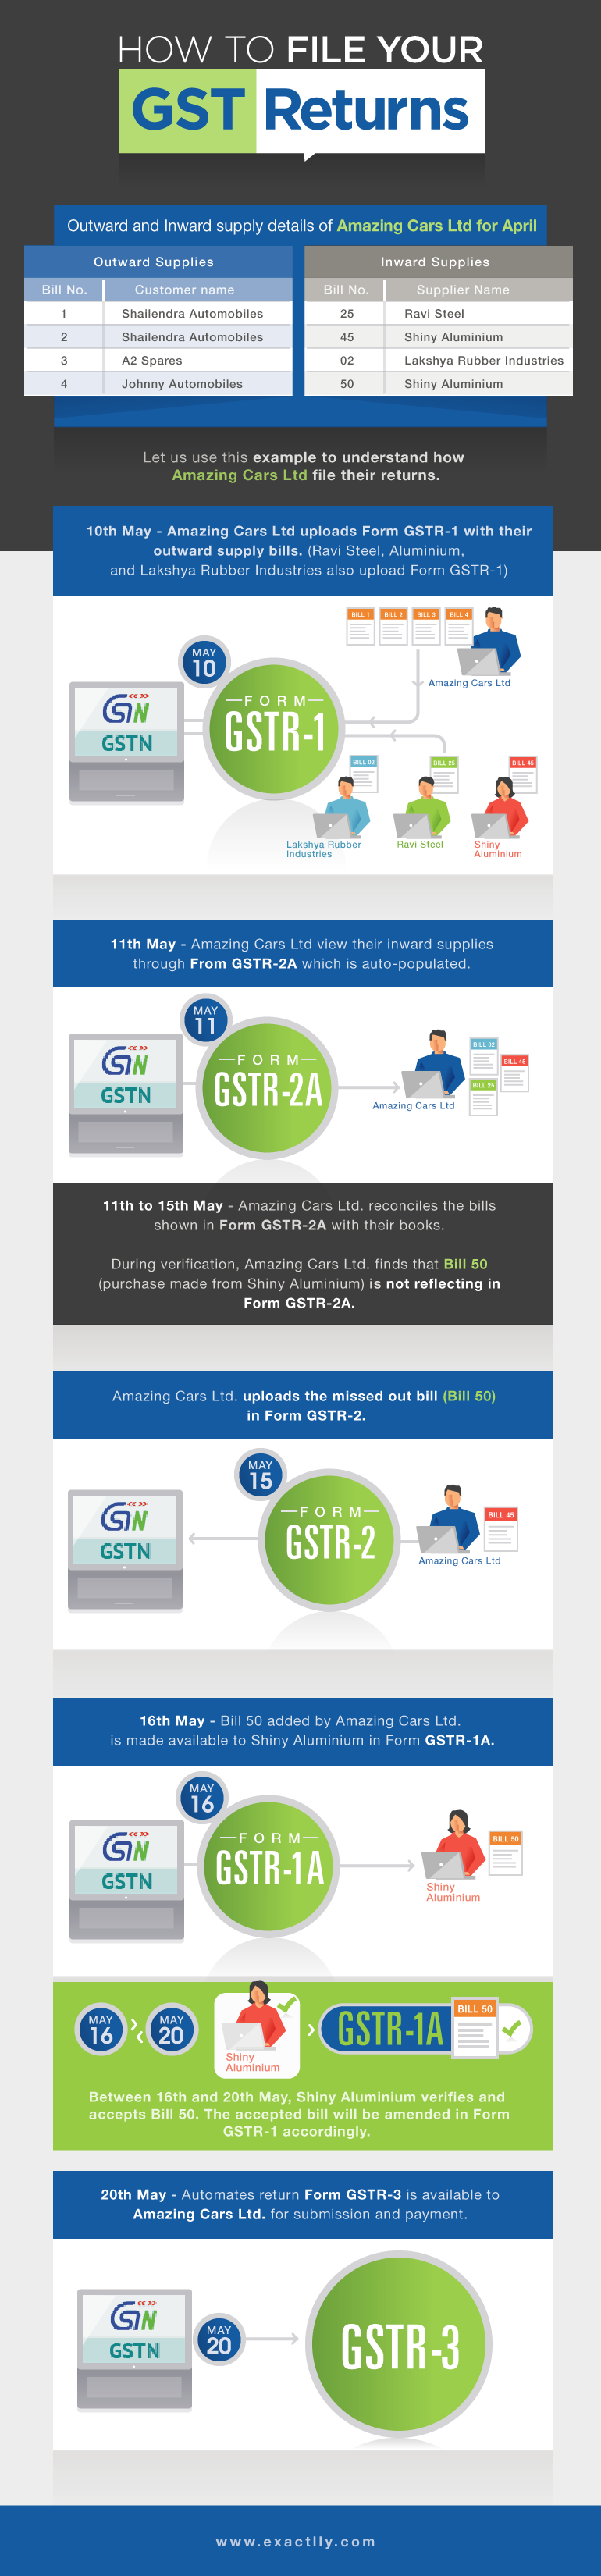 how-to-file-GST-returns